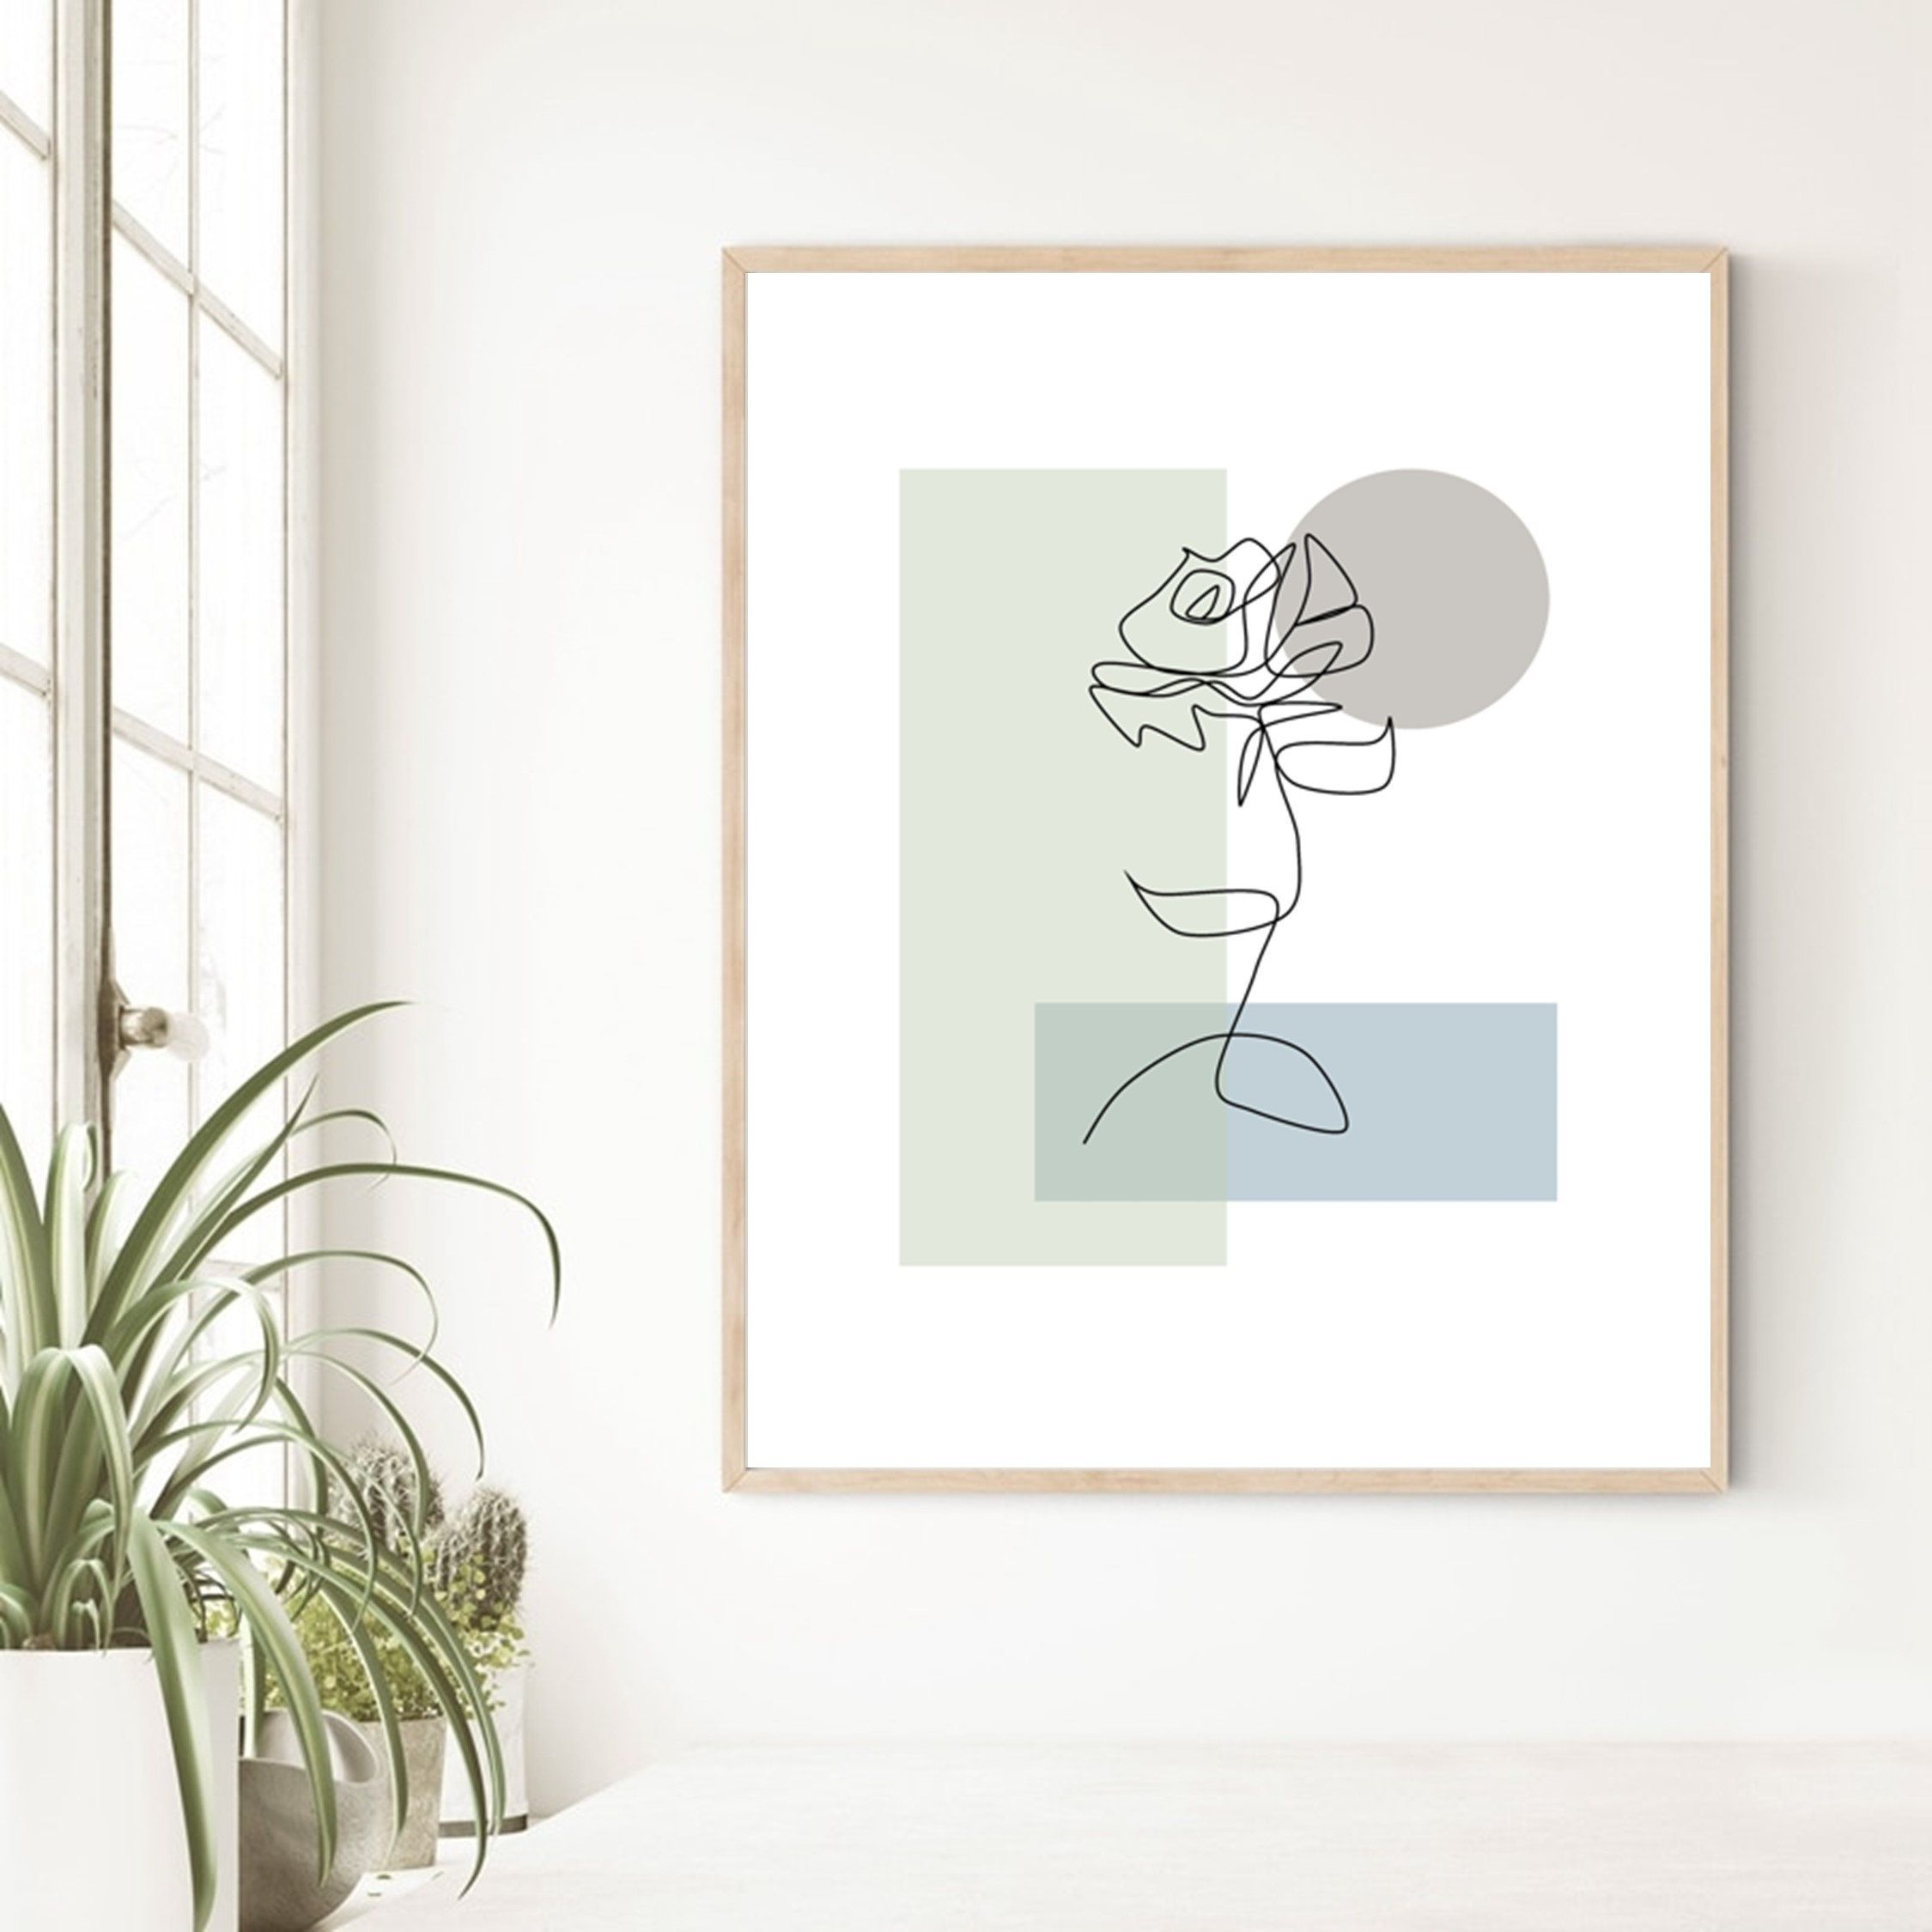 Flower Line Drawing Printable Rose Outline Green Minimalist Etsy In 2021 Flower Line Drawings Wall Art Decor Living Room Etsy Wall Art